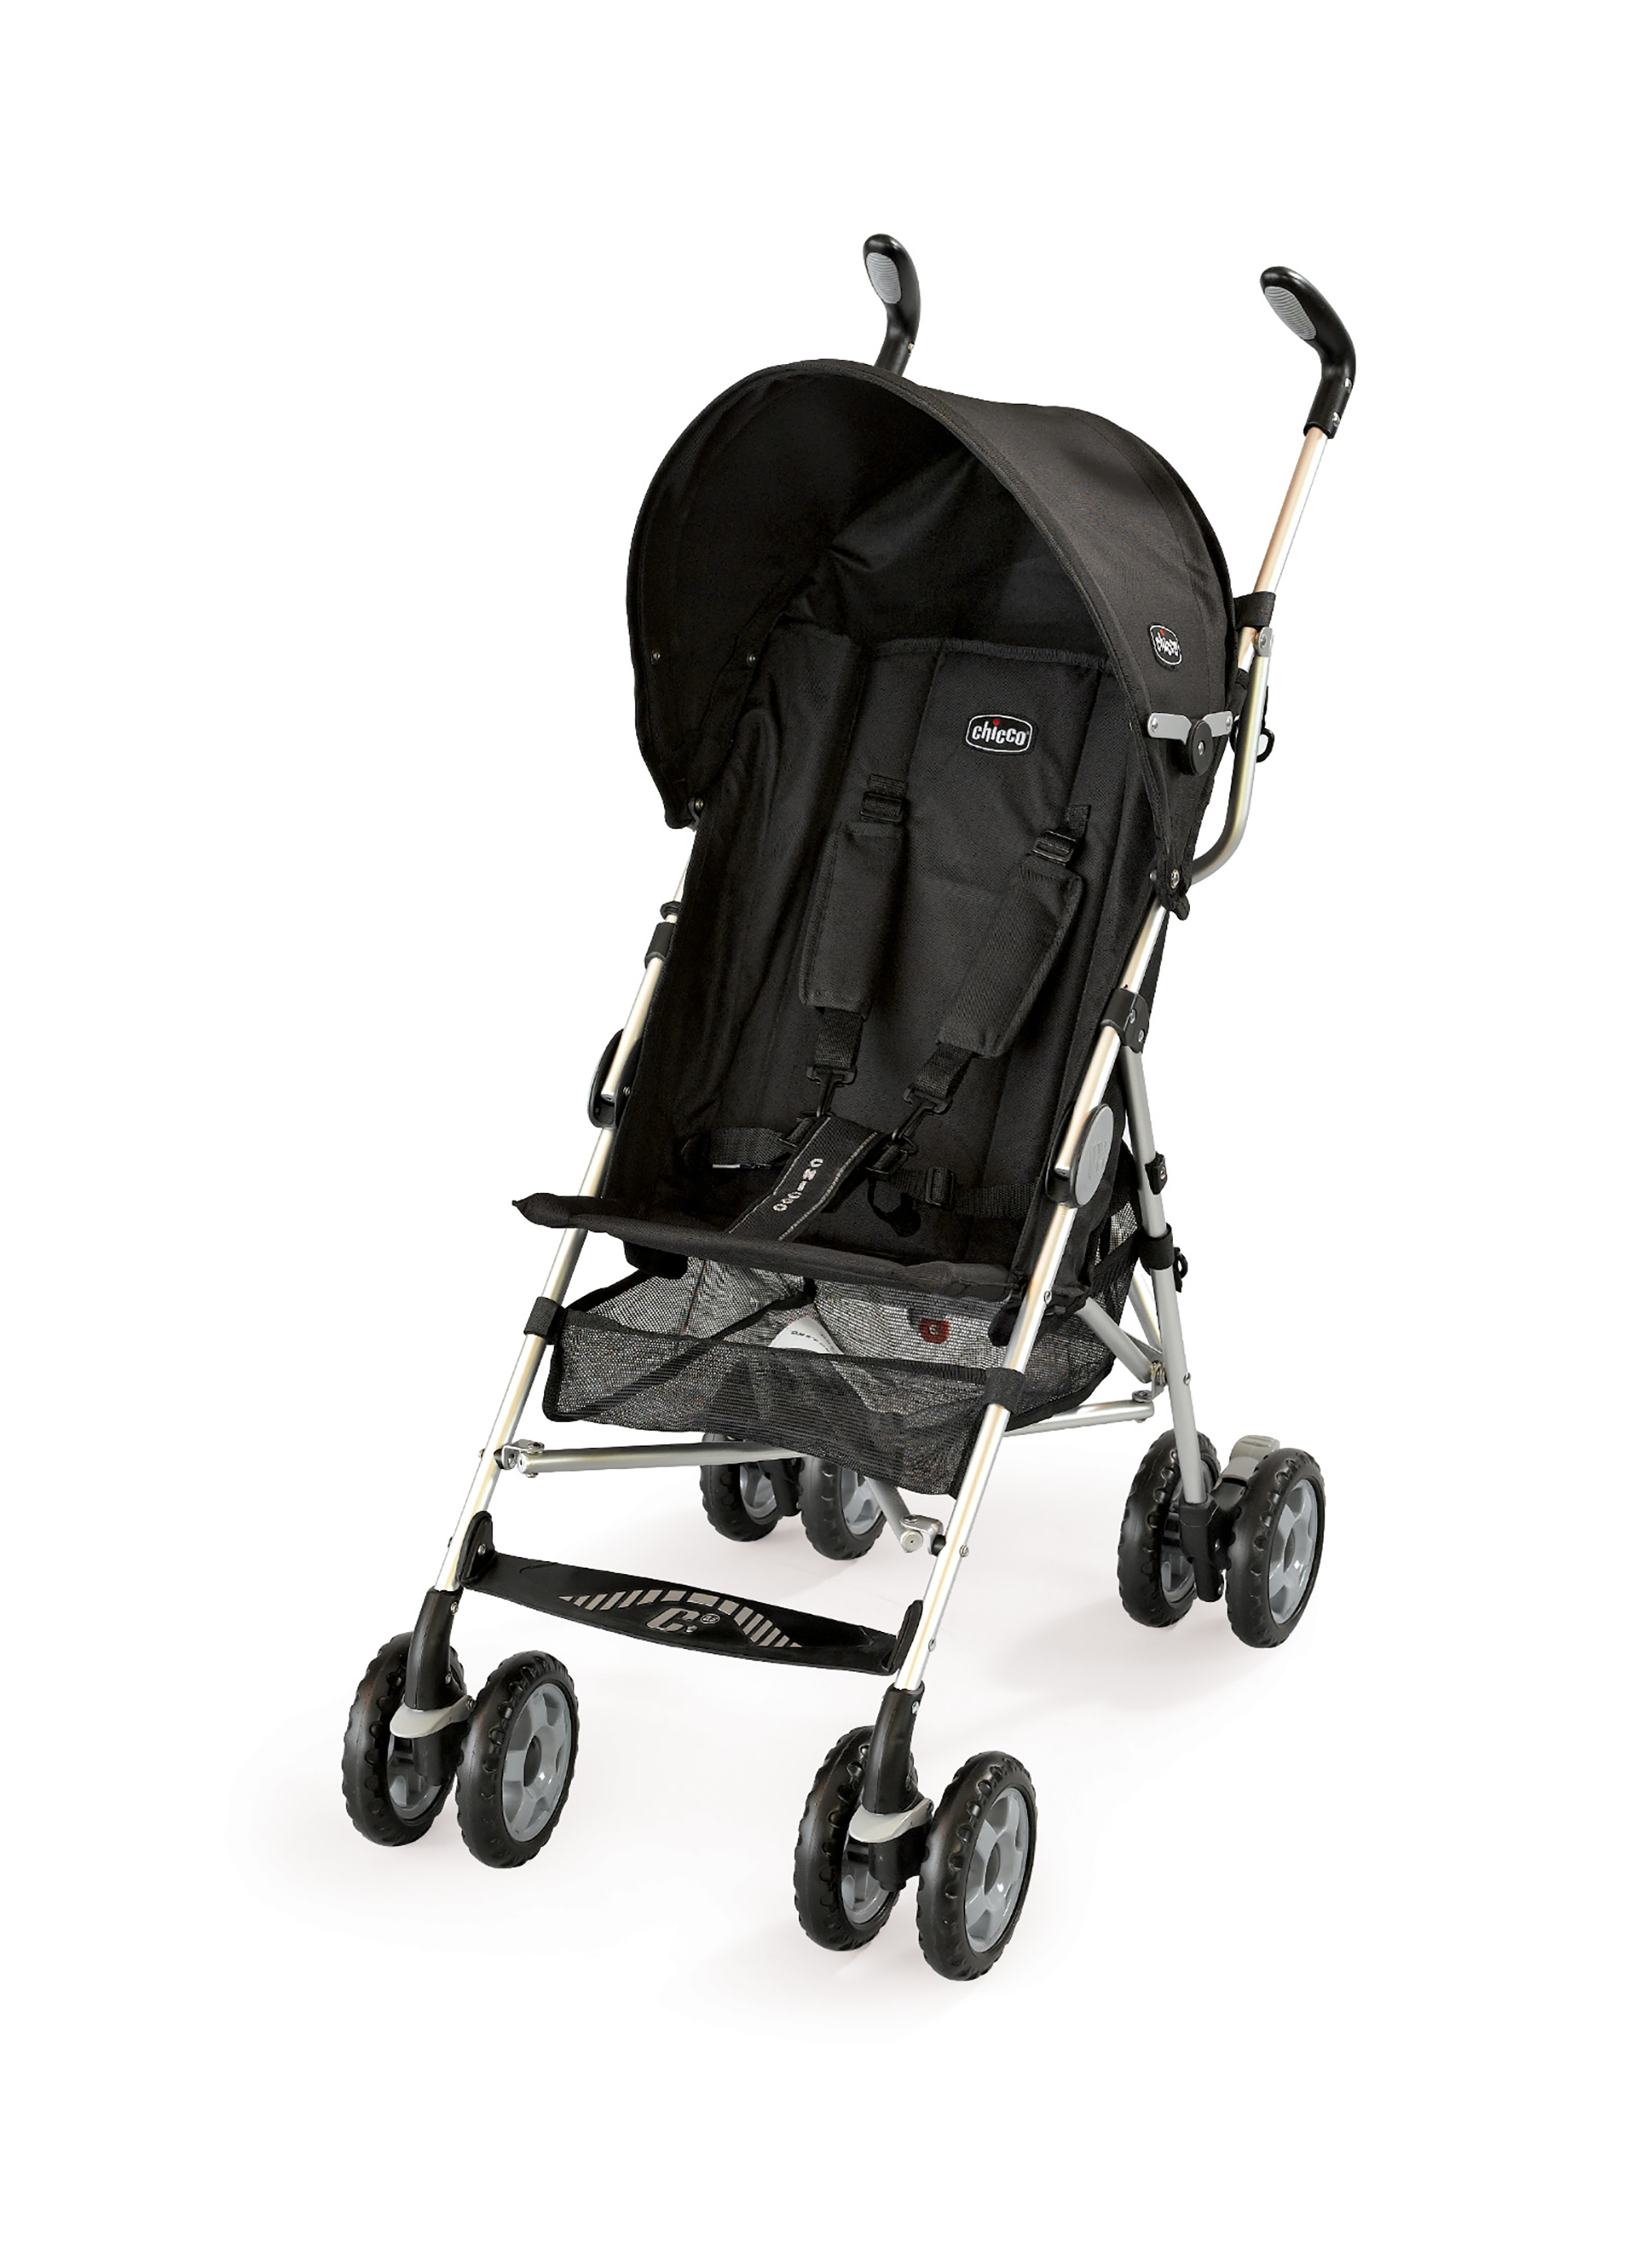 Chicco C6 Lightweight Stroller Black by Chicco